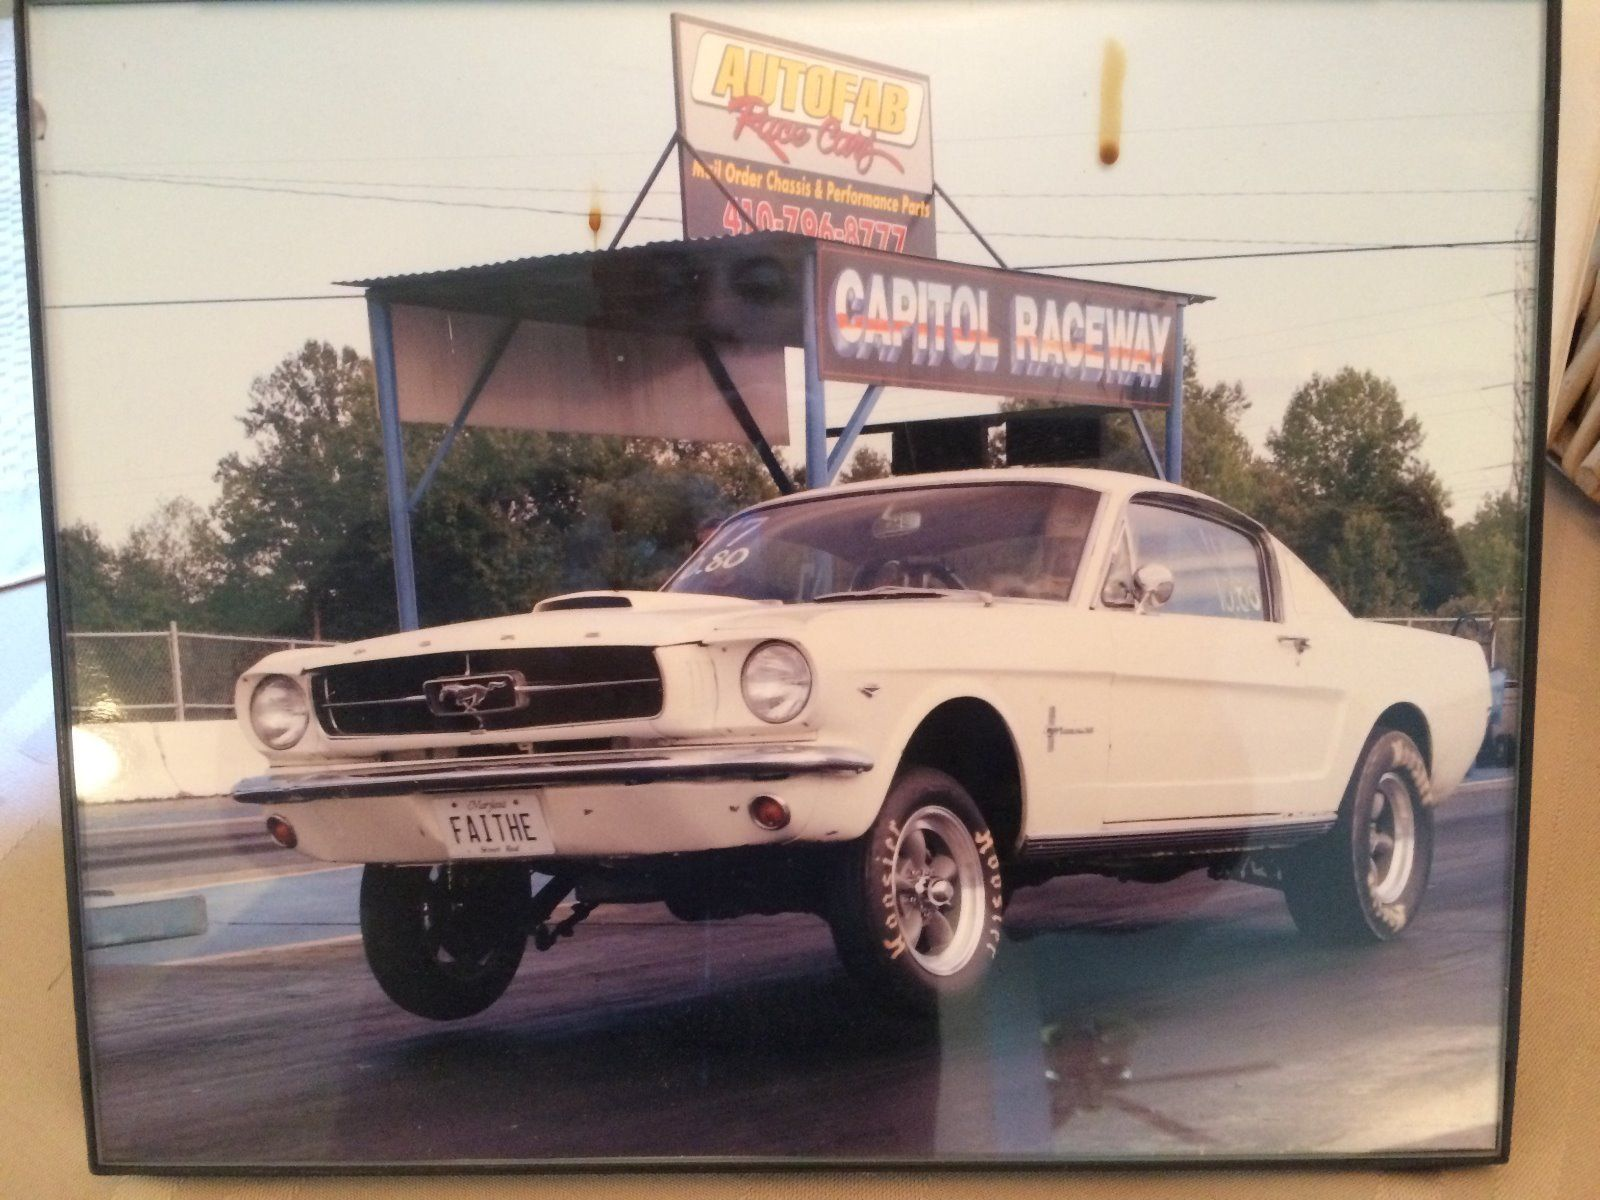 Amazing 1965 ford mustang fastback price reduced10 second 289 1965 ford mustang fastback 2 2 with enclosed trailer 2019